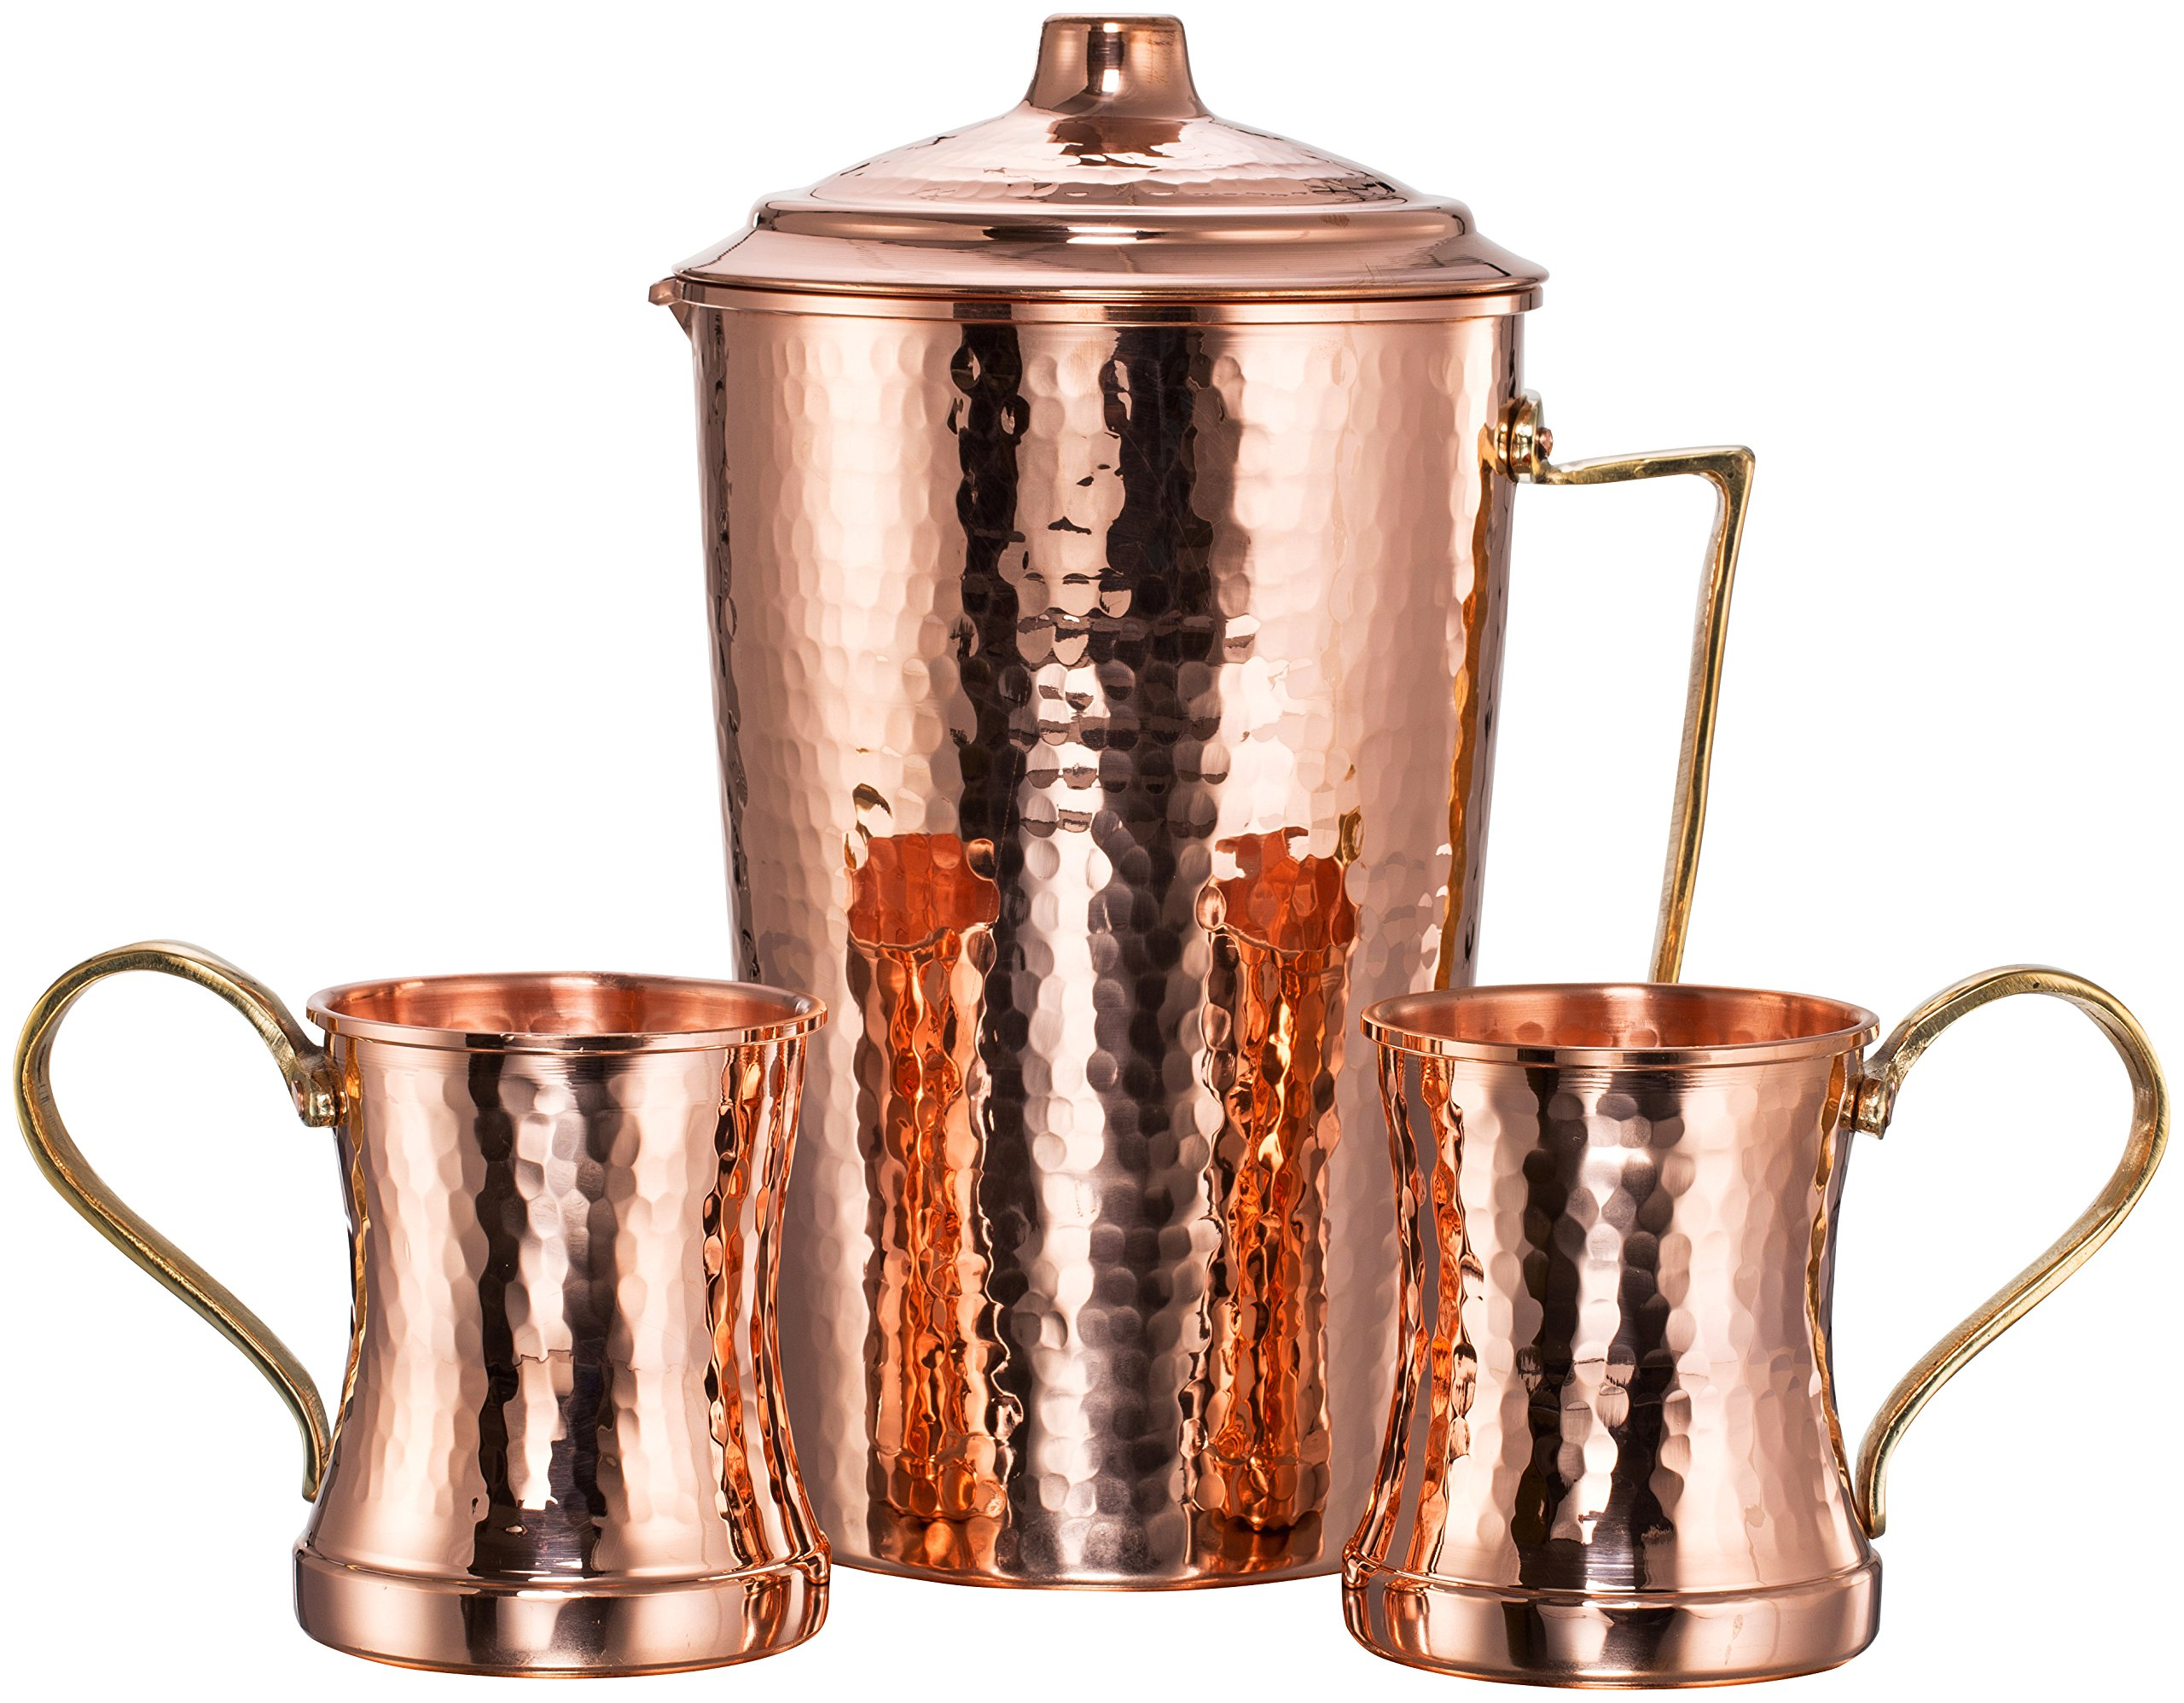 *NEW* THICKEST CopperBull Heavy Gauge 100% Pure Solid Hammered Copper Moscow Mule Water Serving Set (Pitcher & 2 Mugs)